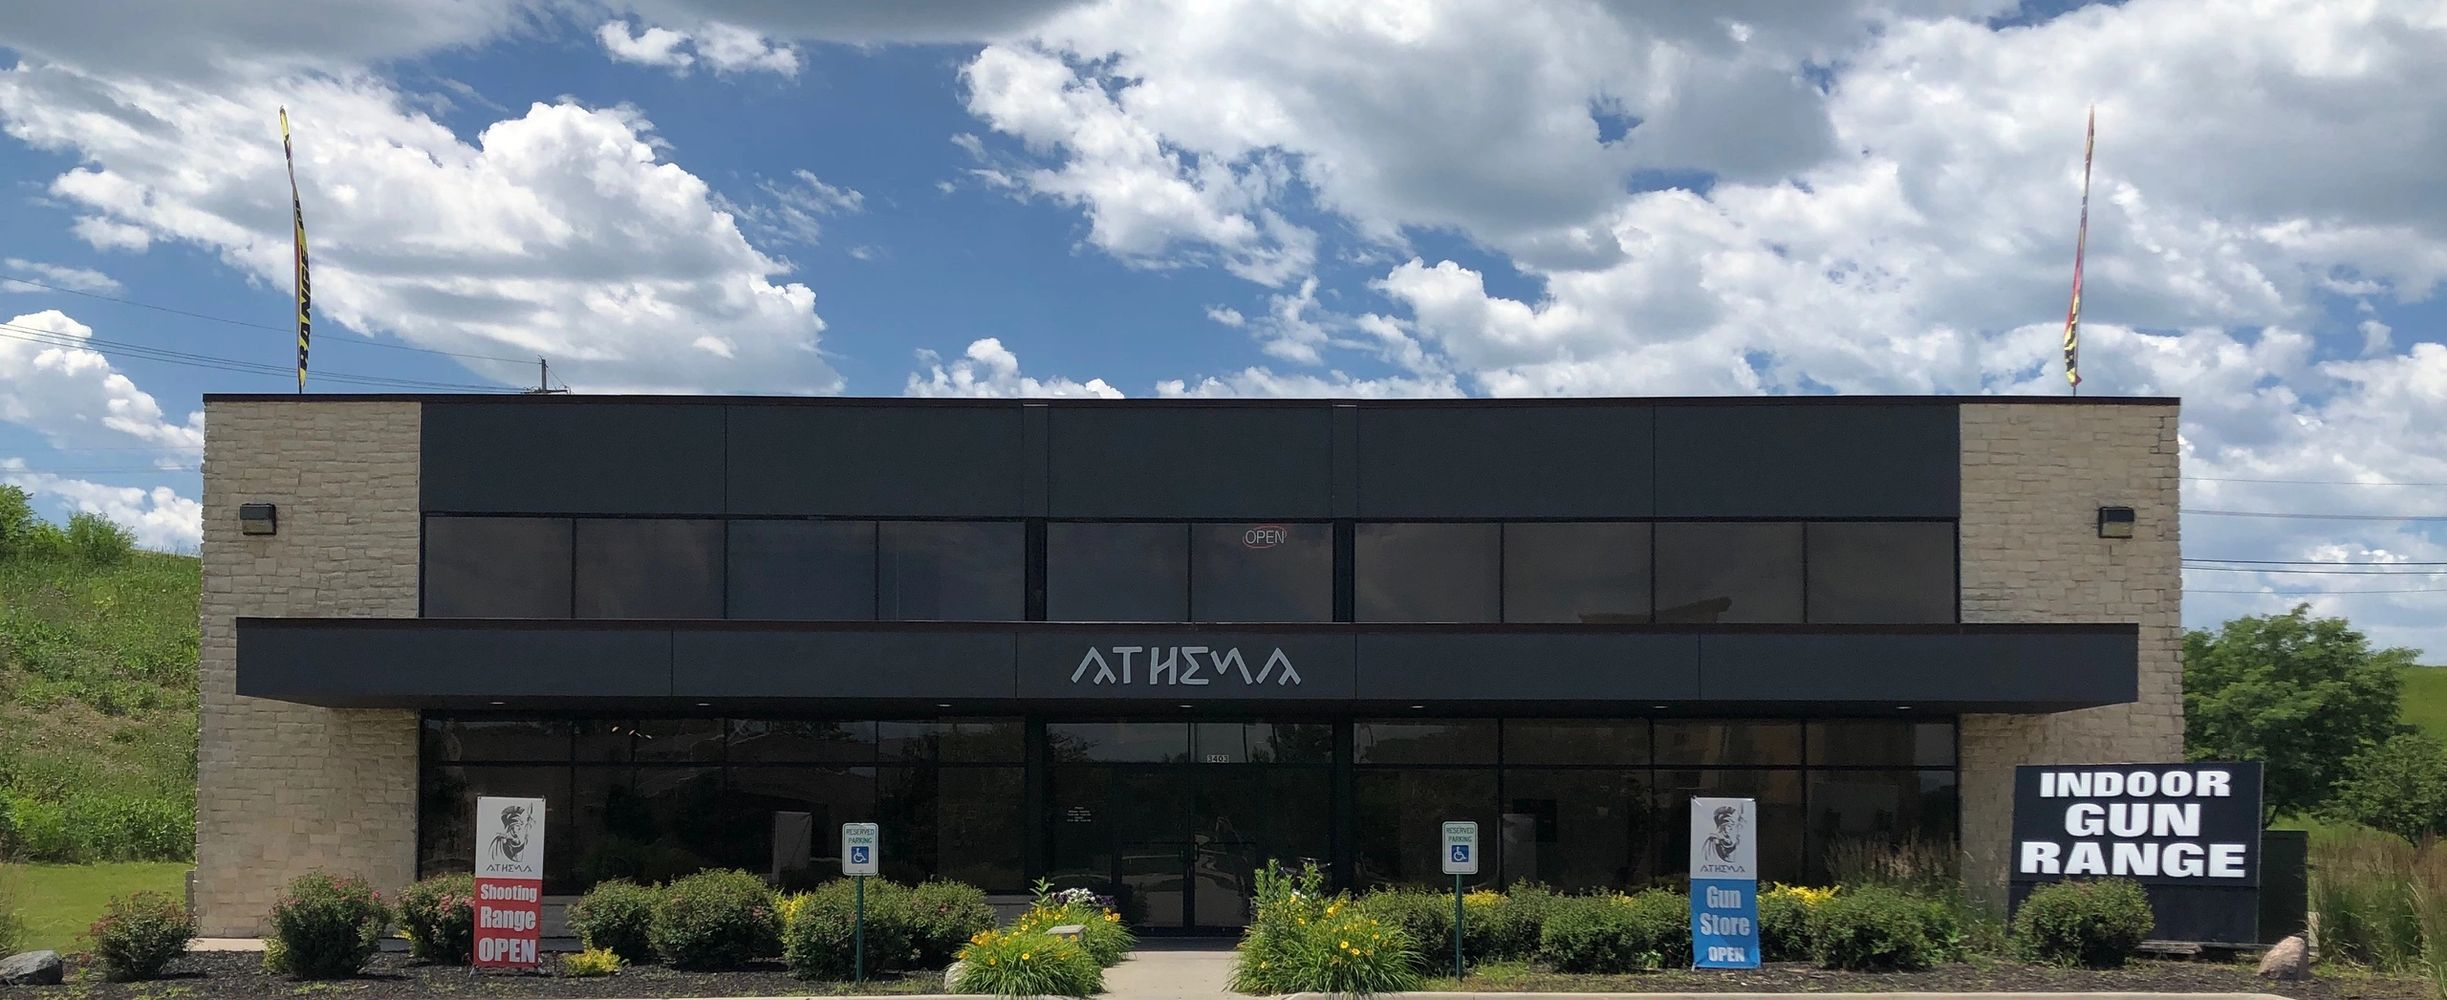 Athena Arms indoor shooting range, gun club, firearms store, training center.